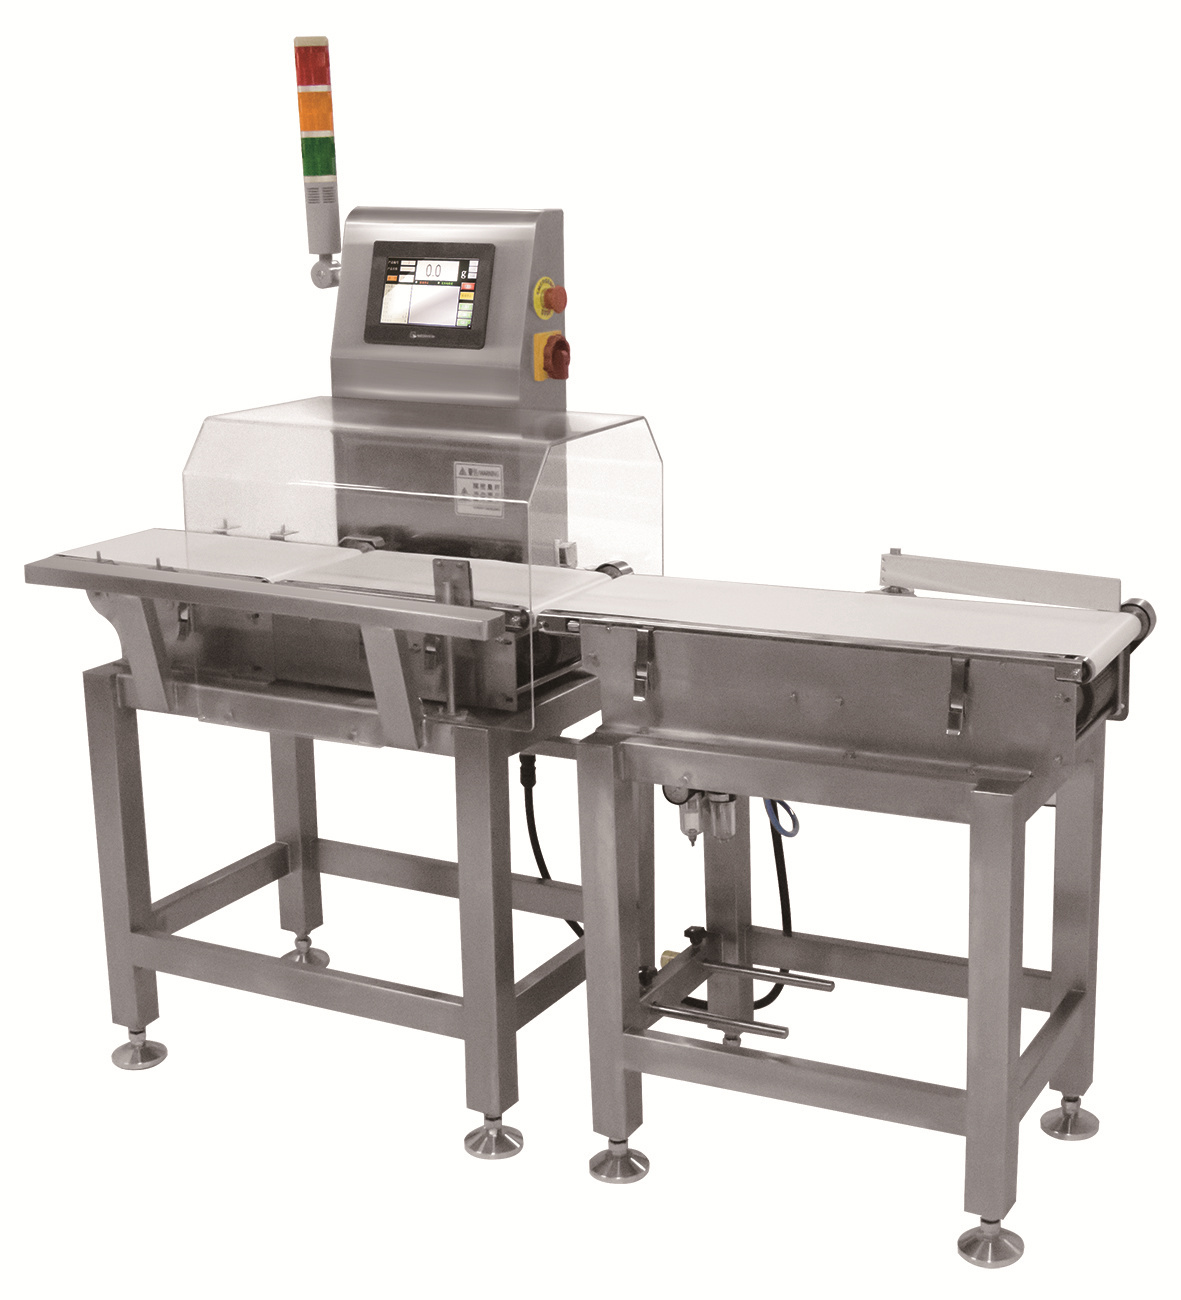 checkweigher, checkweighing, pharmaceutical, food industry,